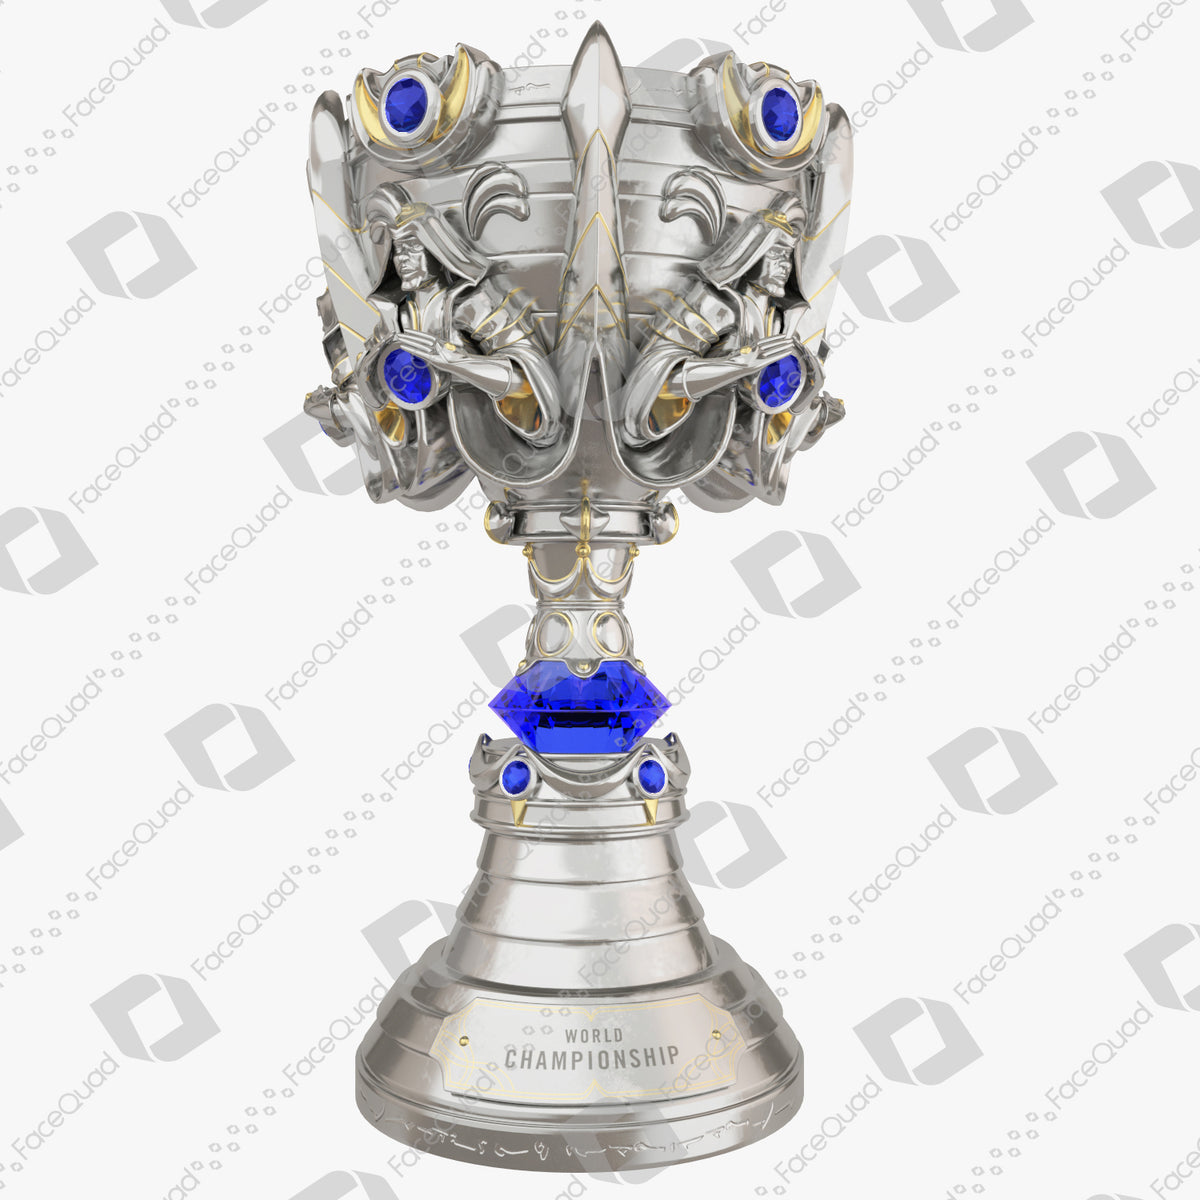 League of Legends World Championship Summoner's Cup Trophy